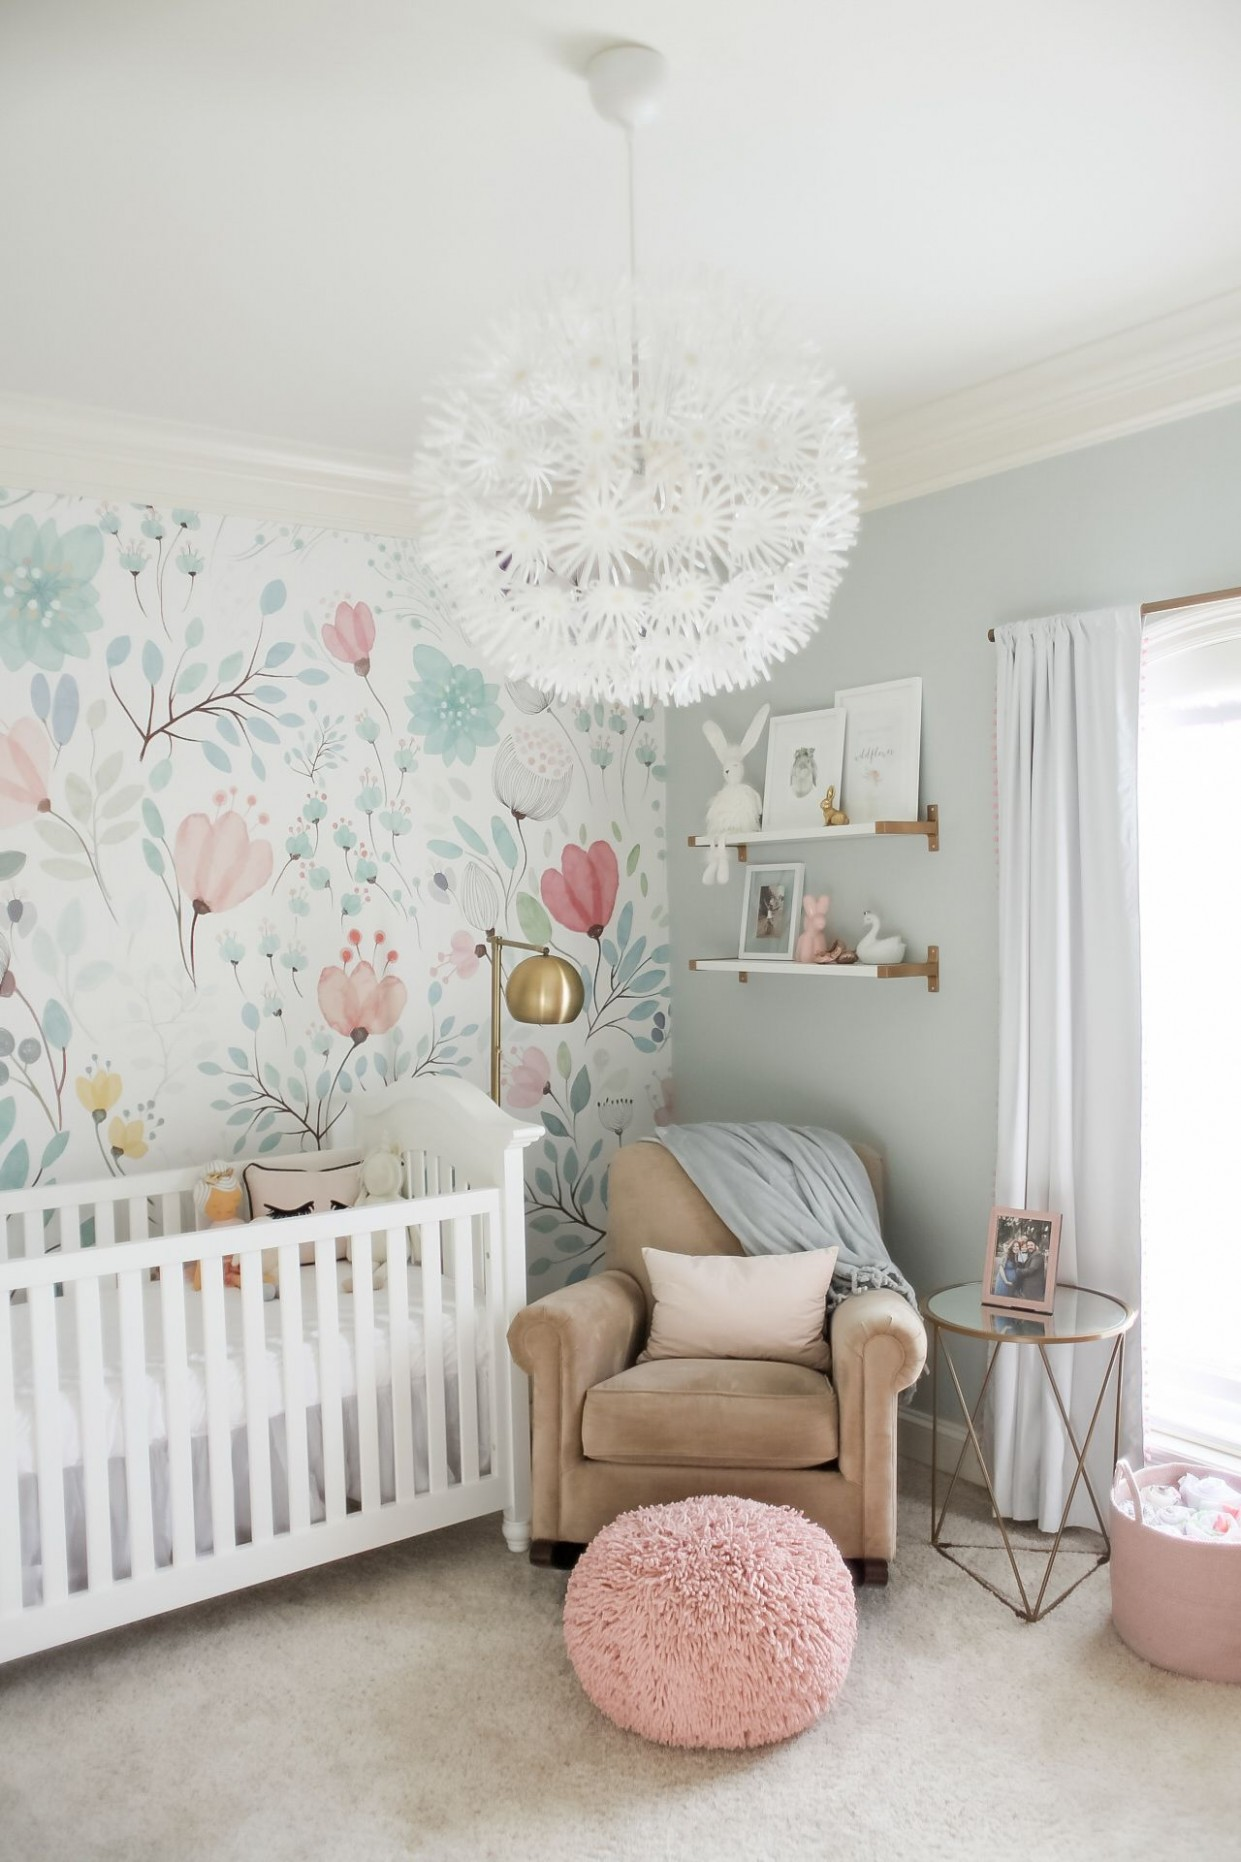 Bright and Whimsical Nursery for Colette - Project Nursery  Baby  - Baby Room Girl